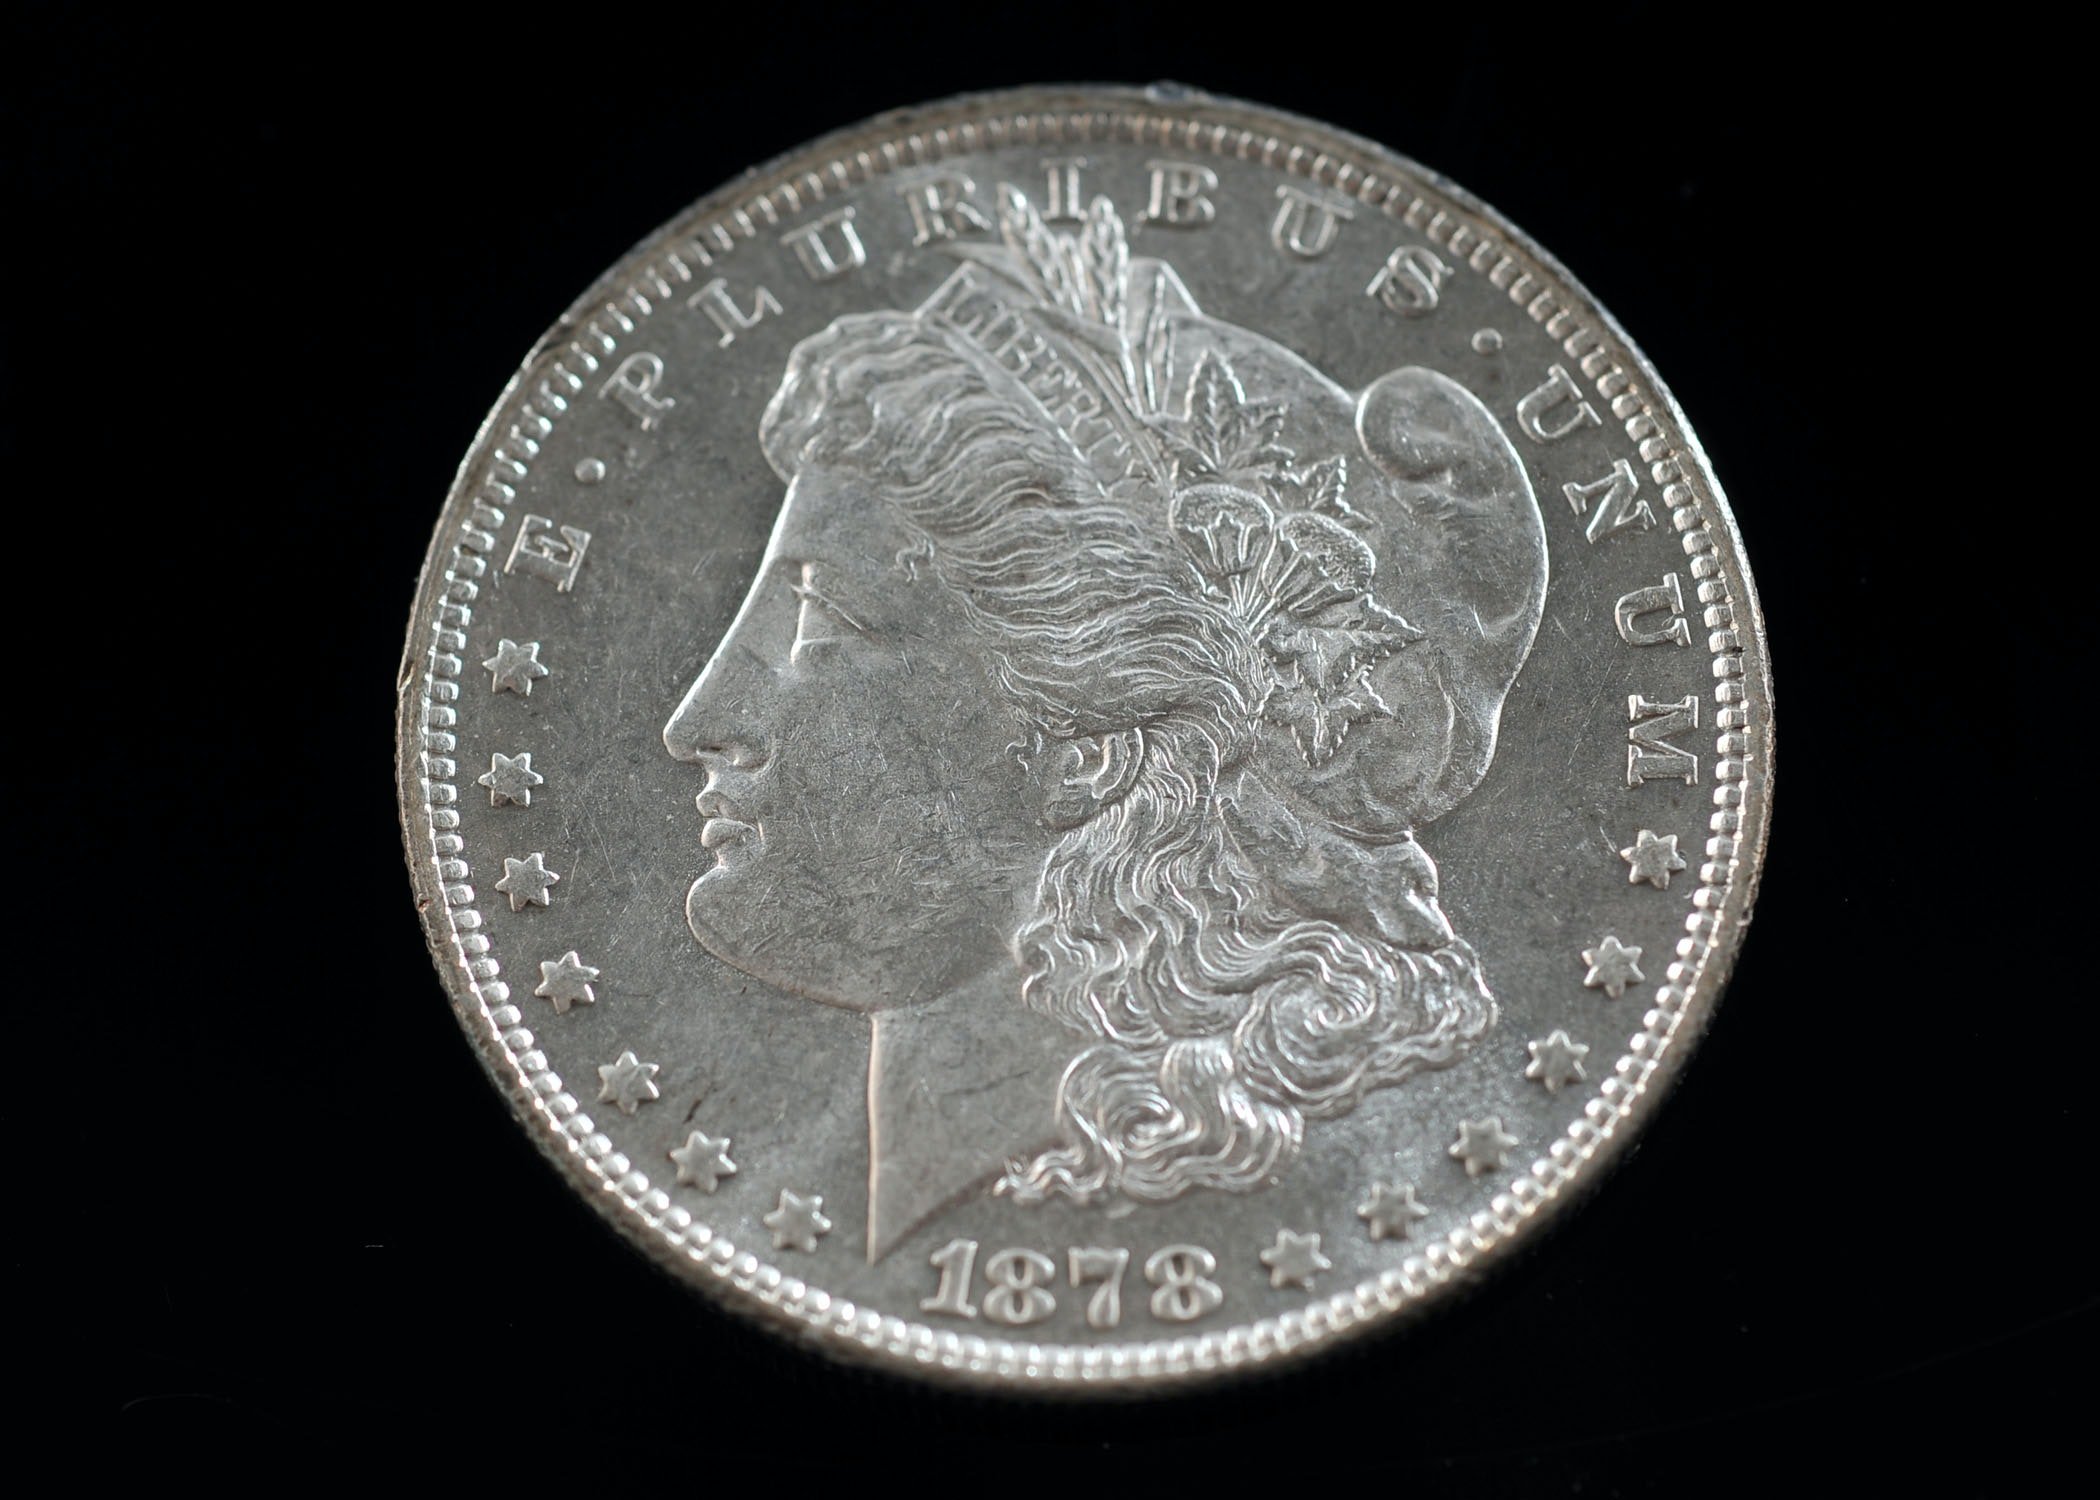 First year of issue 1878 Morgan silver dollar